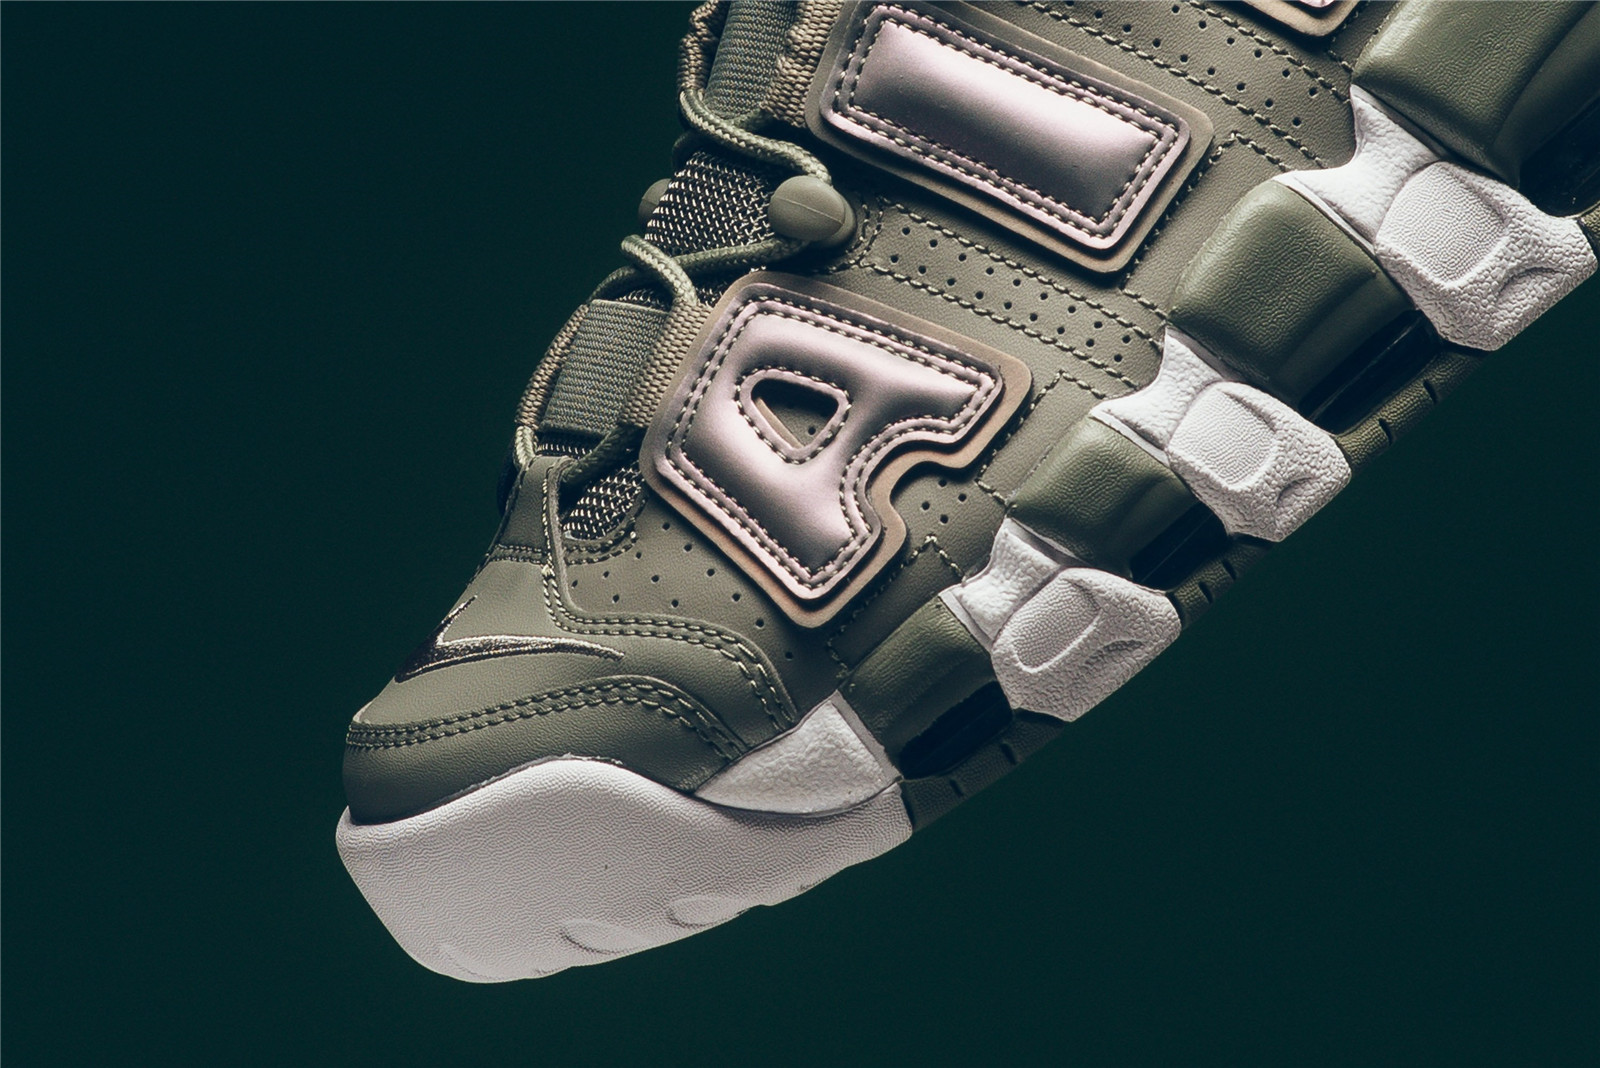 wmns_nike_air_more_uptempo_dark_stucco_white_black_917593_001_sneaker_politics_6